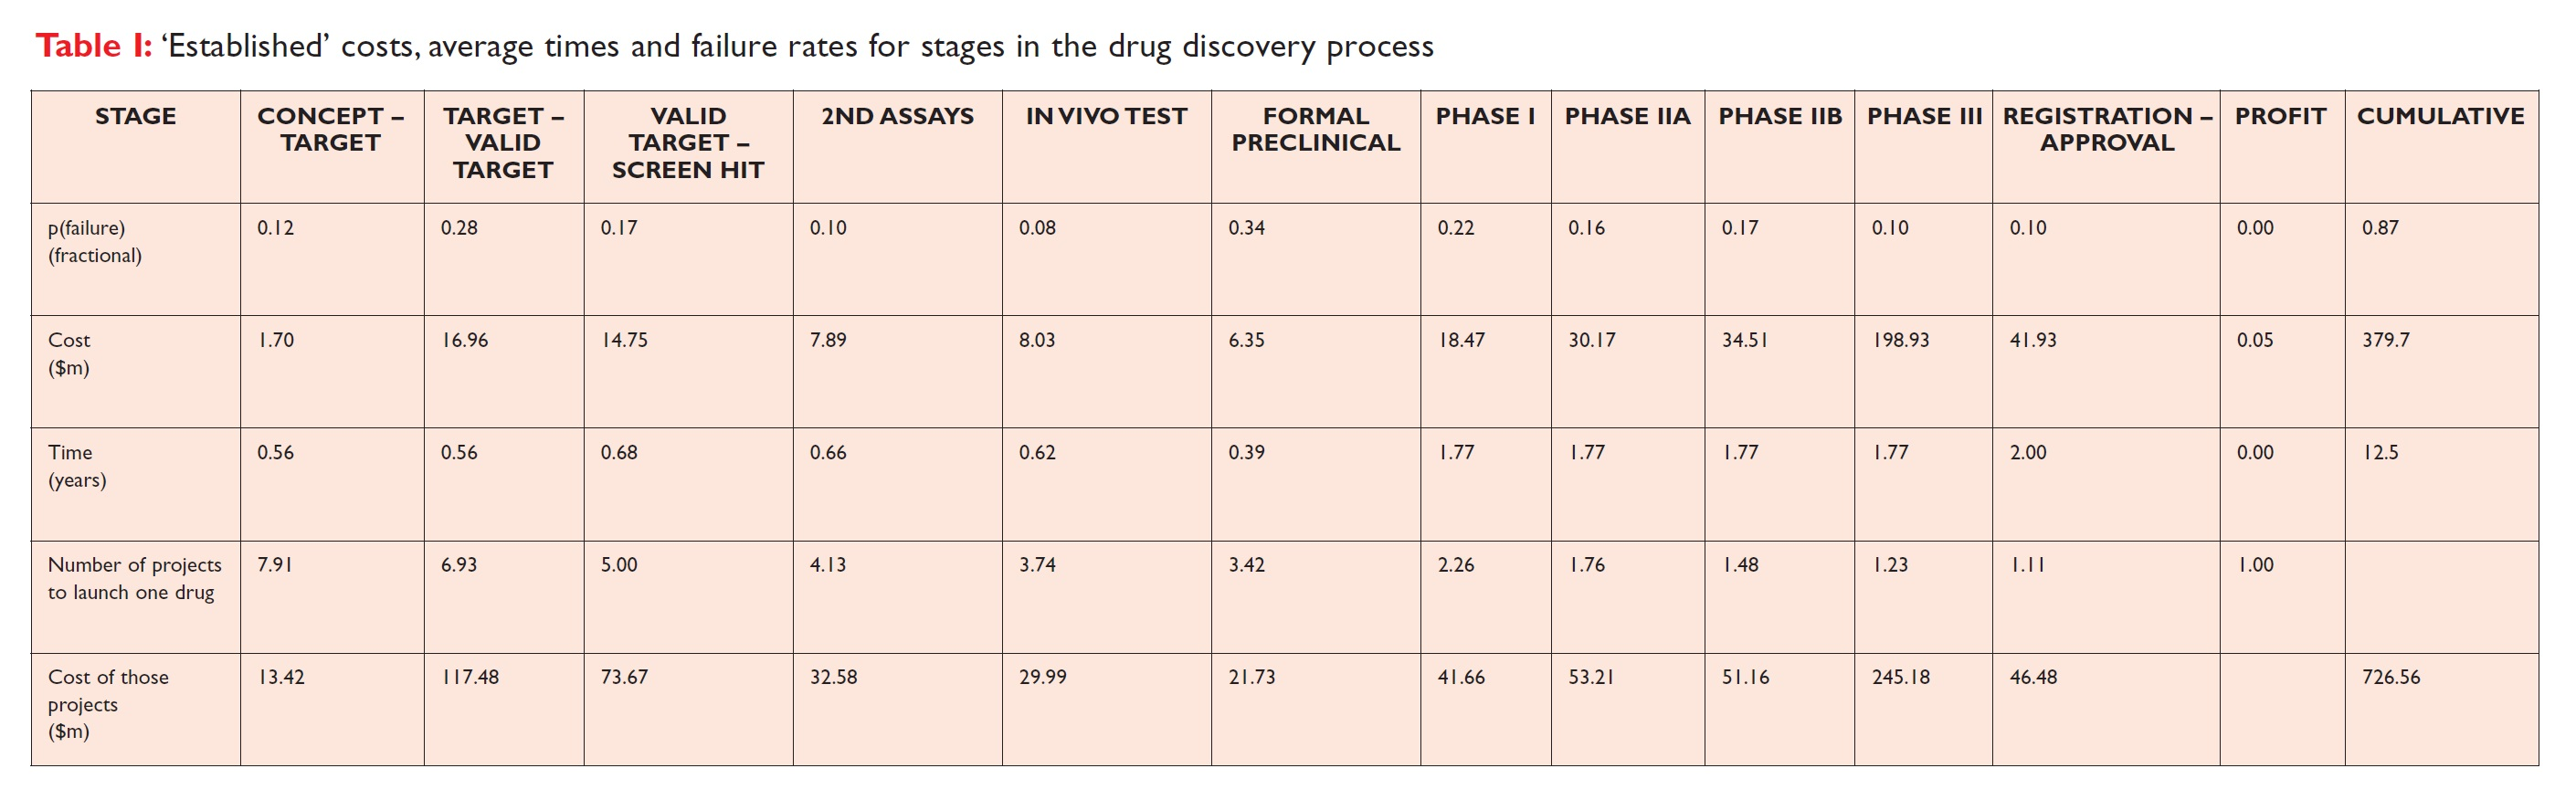 Table 1 Established costs, average times and failure rates for stages in the drug discovery process